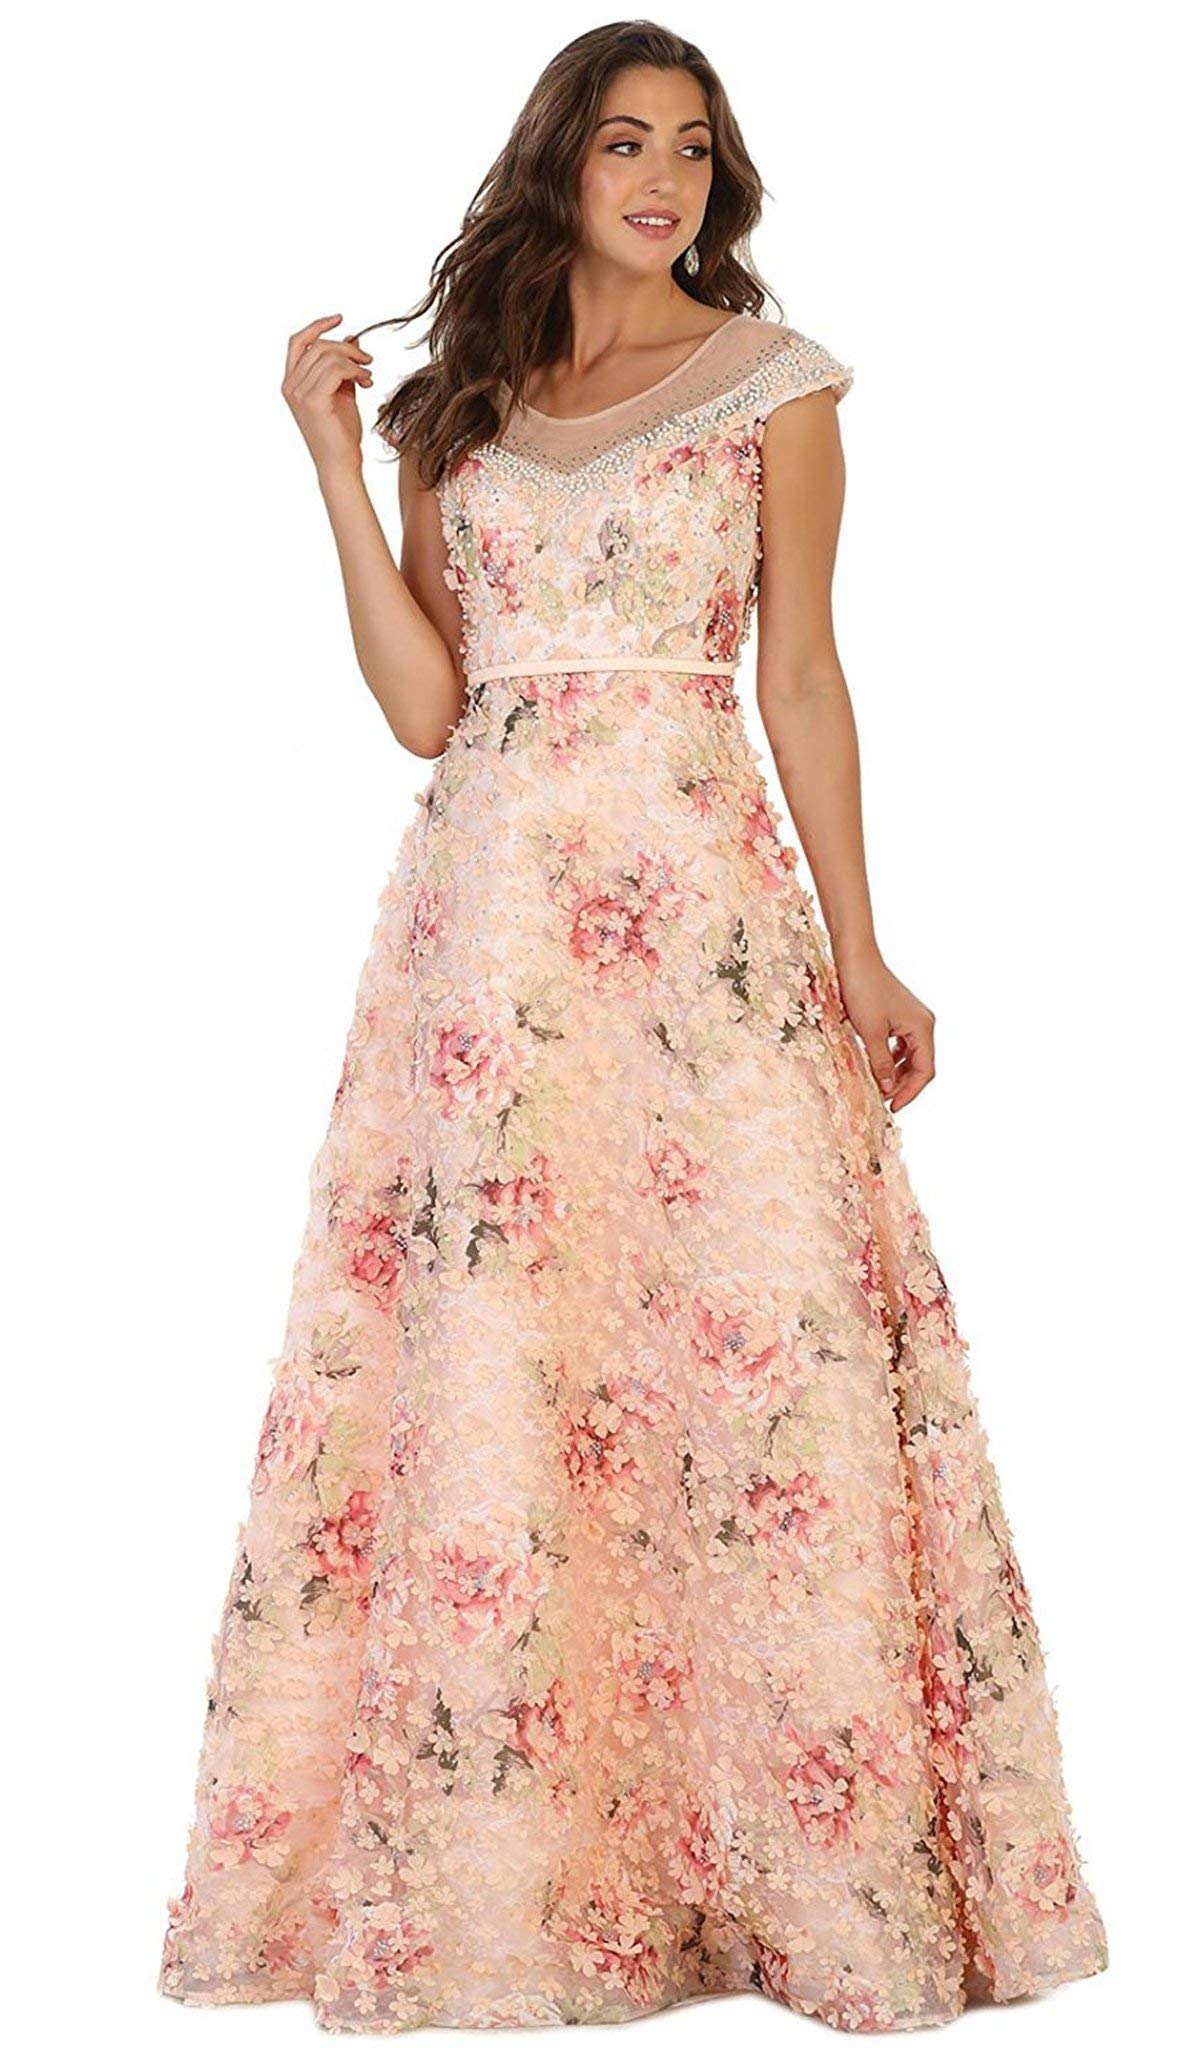 0c9c5a1283e0 May Queen RQ7554 Cap Sleeve Floral Embellished A-line Evening Gown in Peach  .